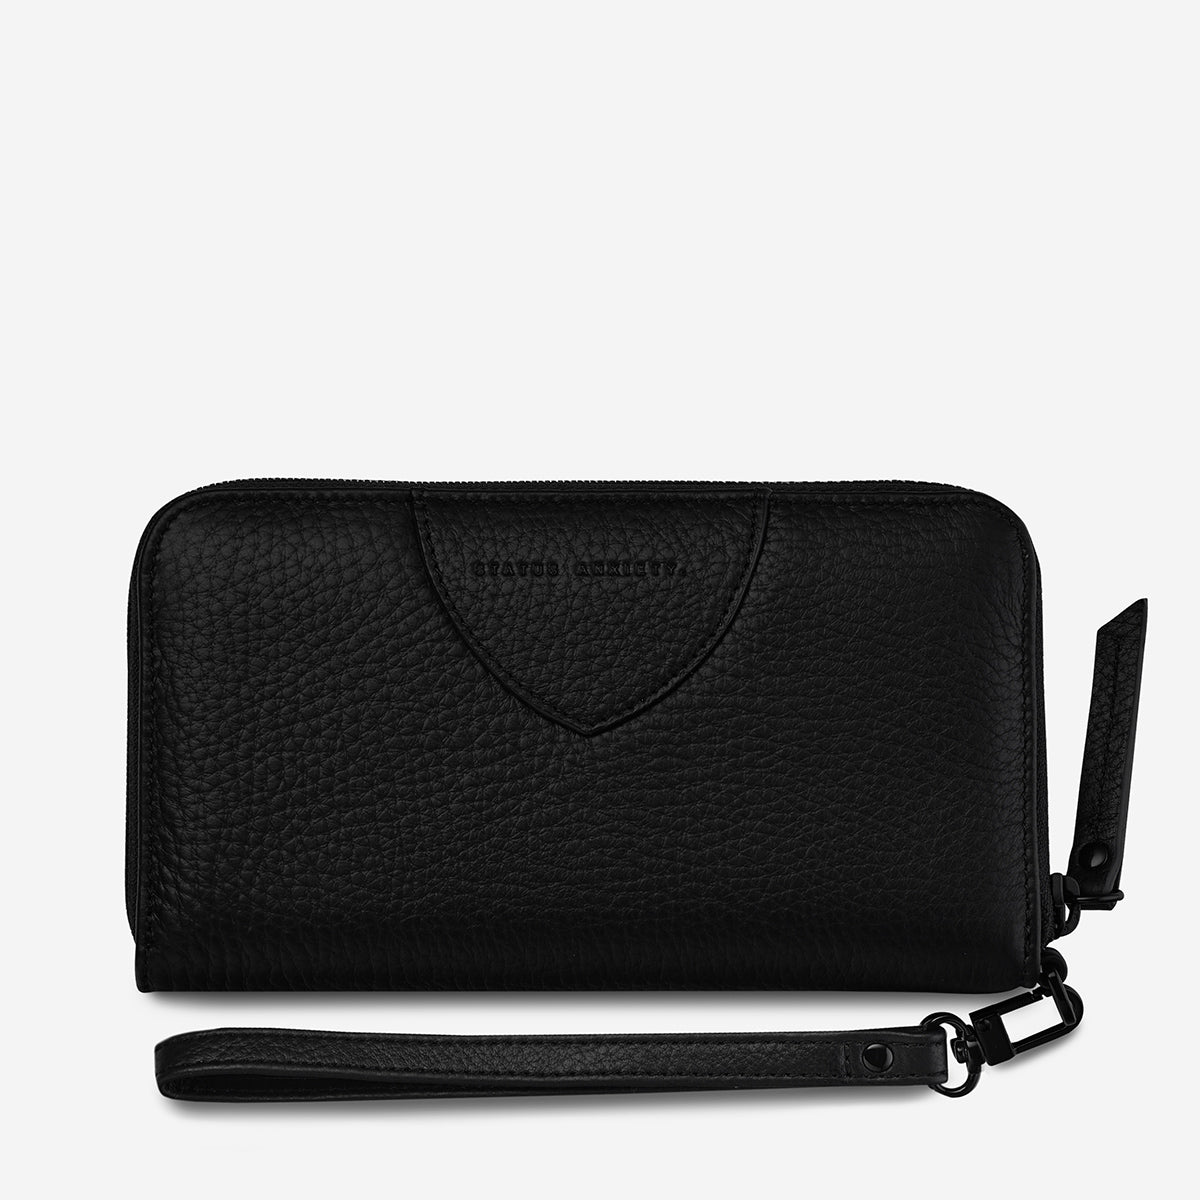 Status Anxiety Moving On Women's Leather Wallet - Black